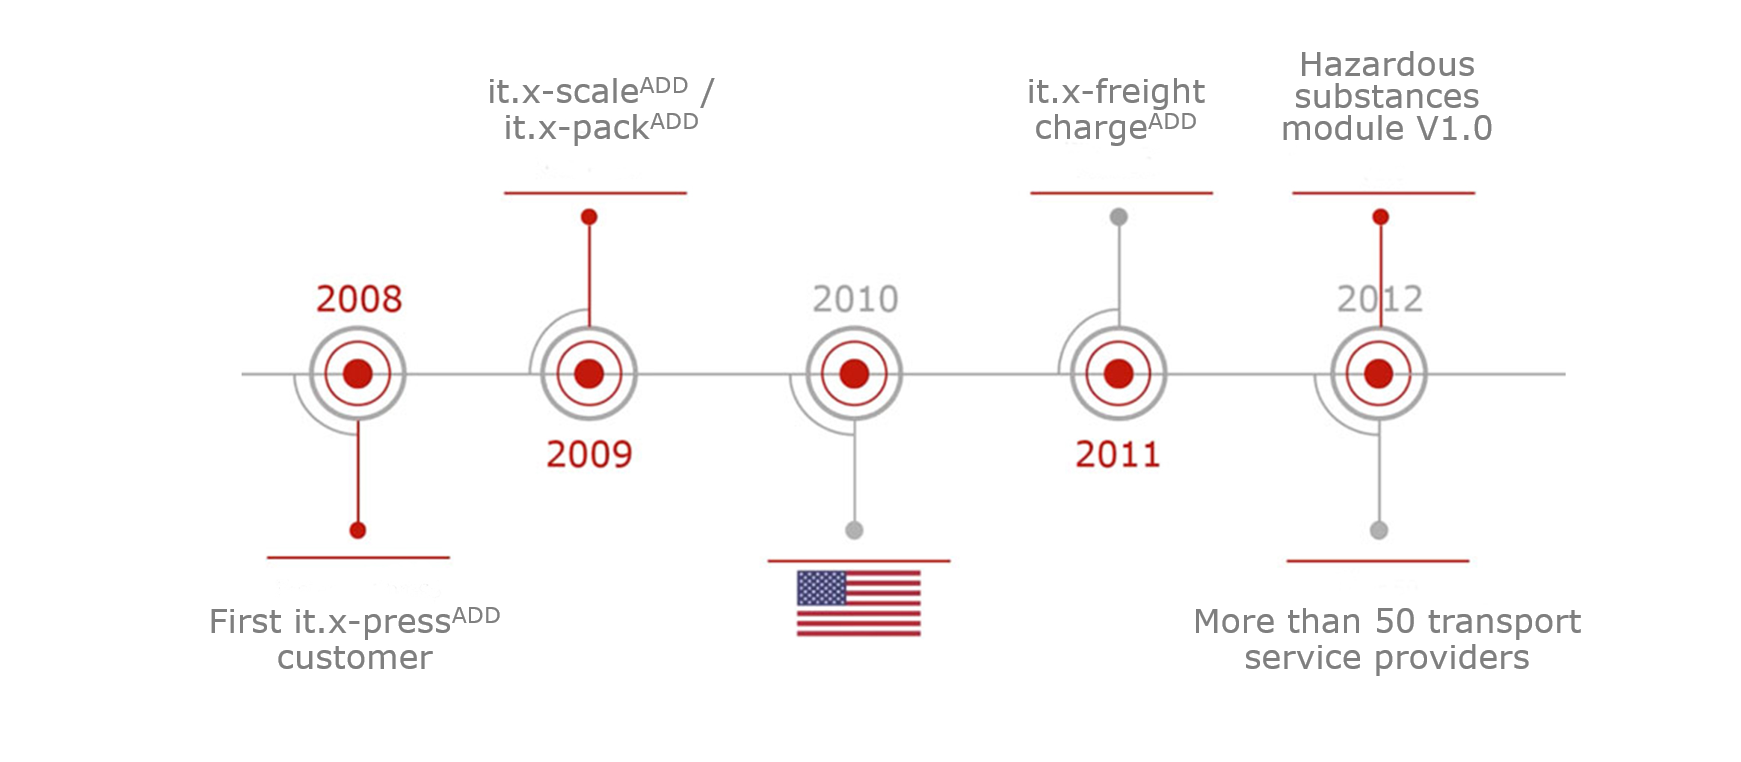 Timeline of it.x-pressADD solutions development from 2008 to 2012.